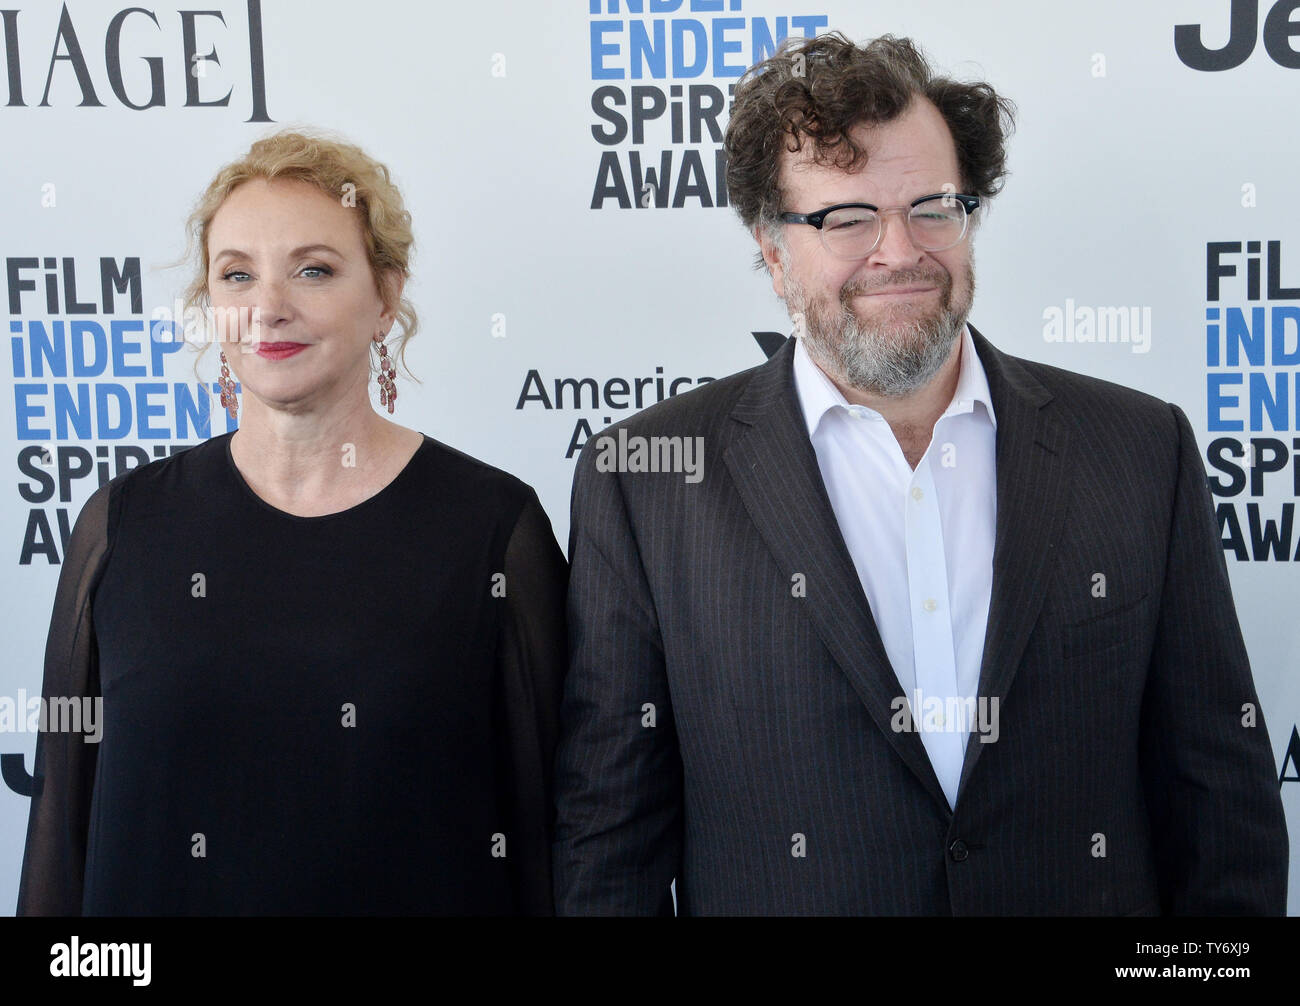 Actress J. Smith-Cameron and director Kenneth Lonergan attend the 32nd annual Film Independent Spirit Awards in Santa Monica, California on February 25, 2017. Photo by Jim Ruymen/UPI - Stock Image